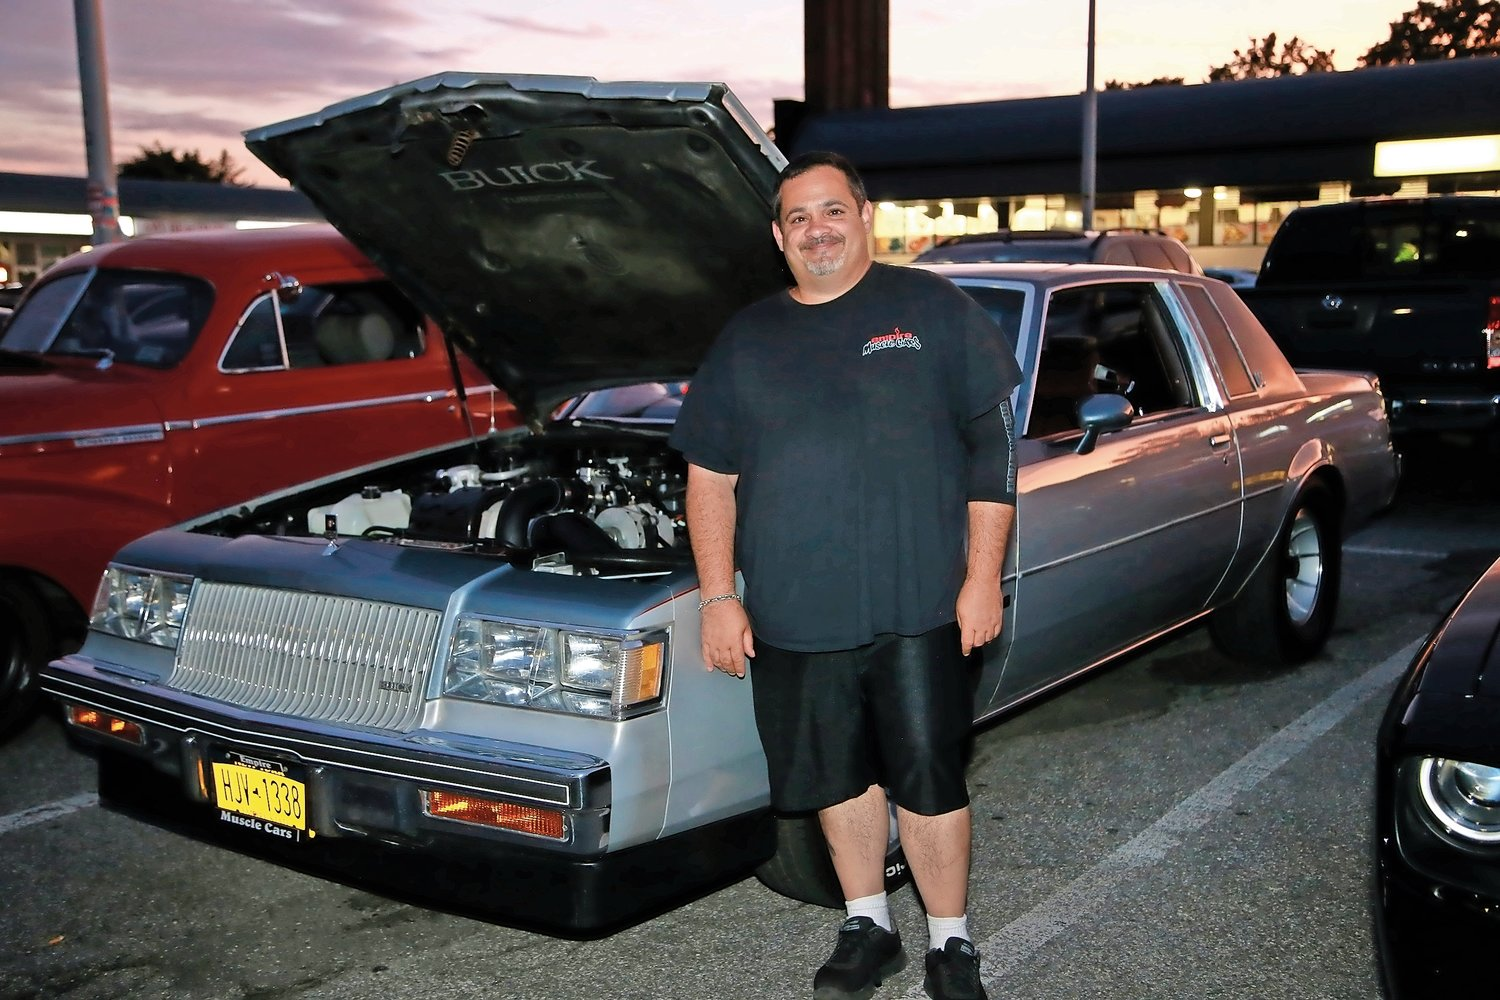 Victor Doto, president of the Empire Muscle Car club, posed with his 1987 Buick Turbo T Regal.